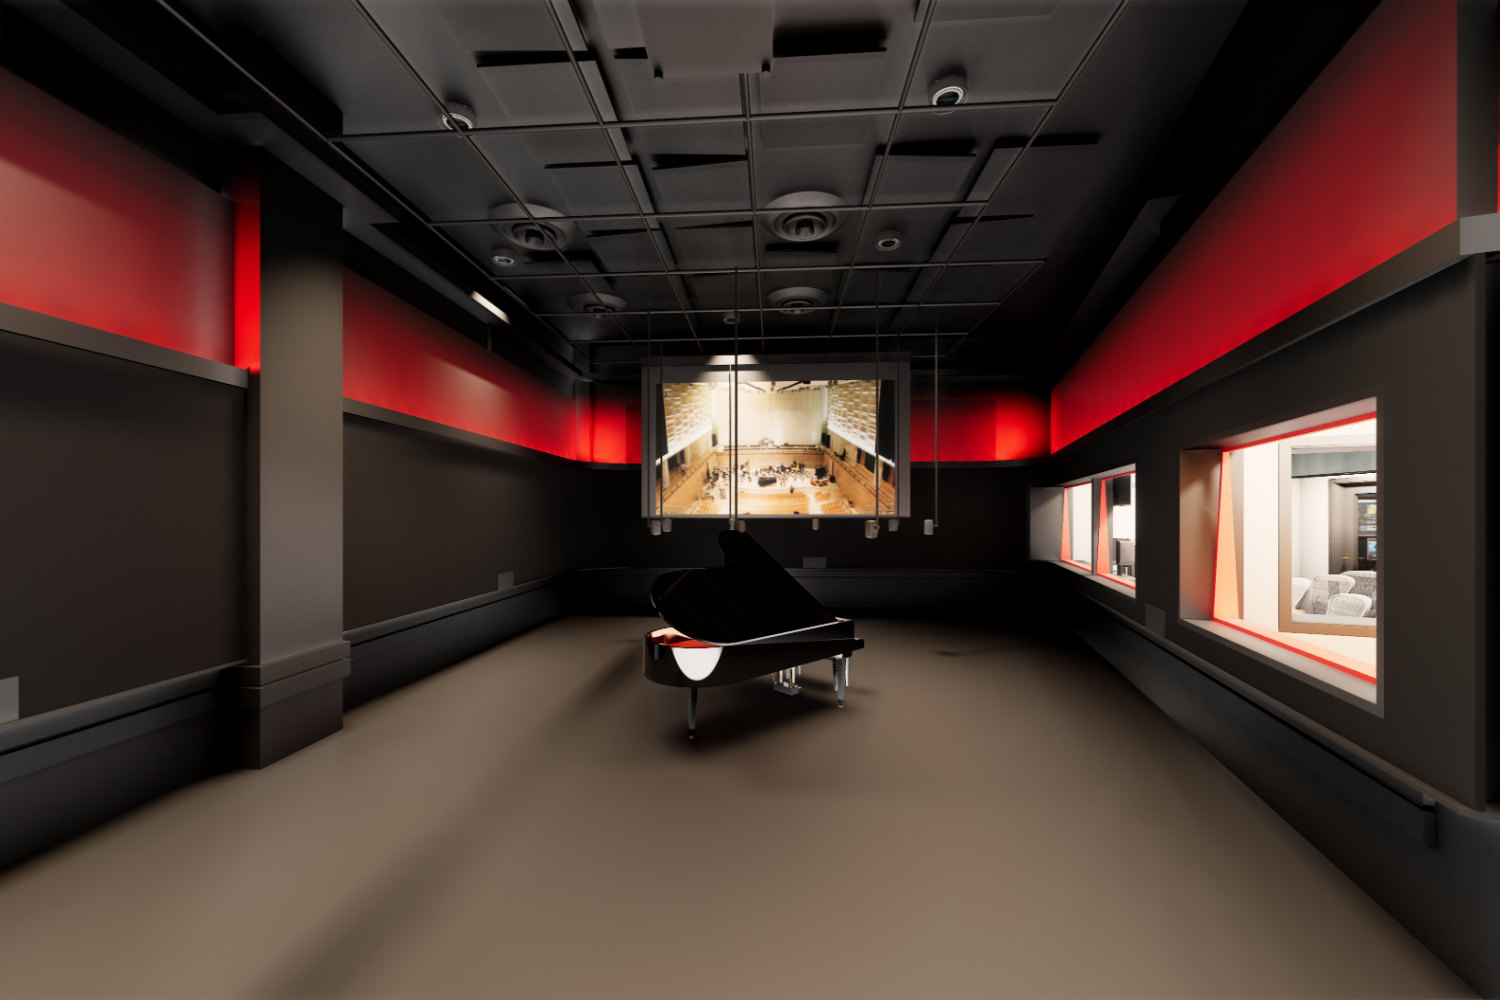 Rensselaer Polytechnic Institute (RPI) brand new state-of-the-art audio production facilities, designed by WSDG - Main Live Room